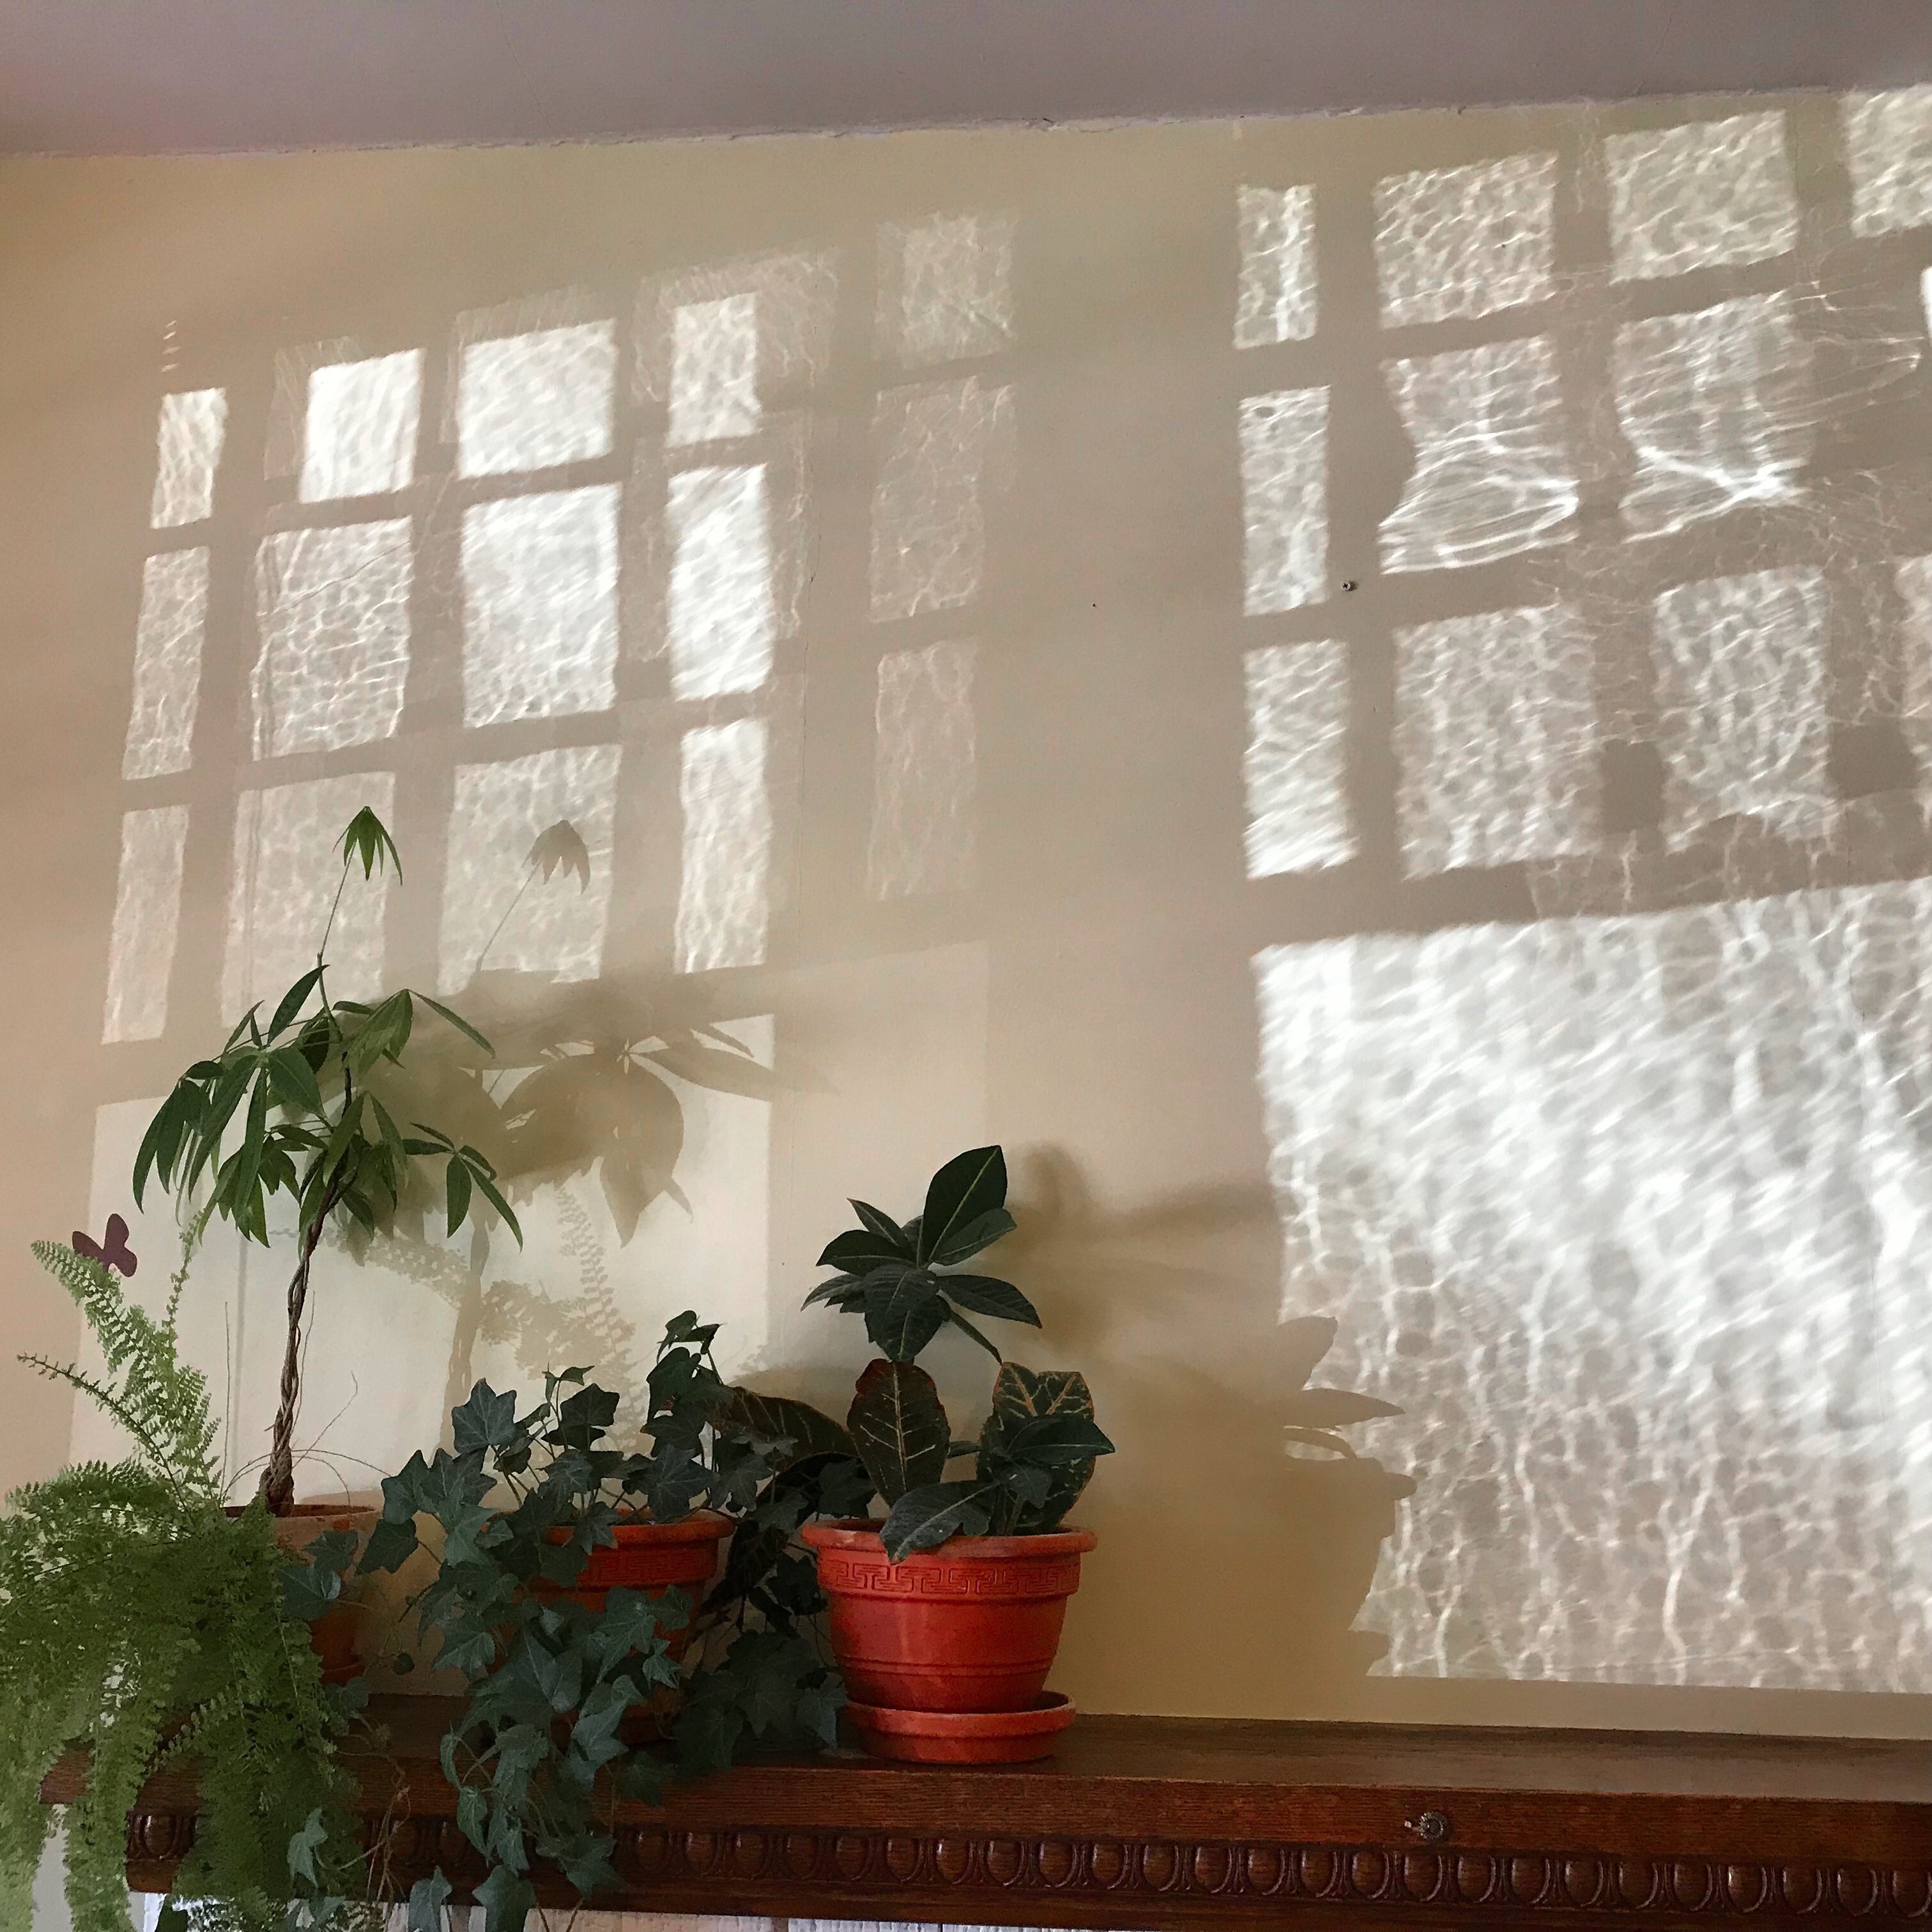 sunlight reflecting in wavy patterns on the wall